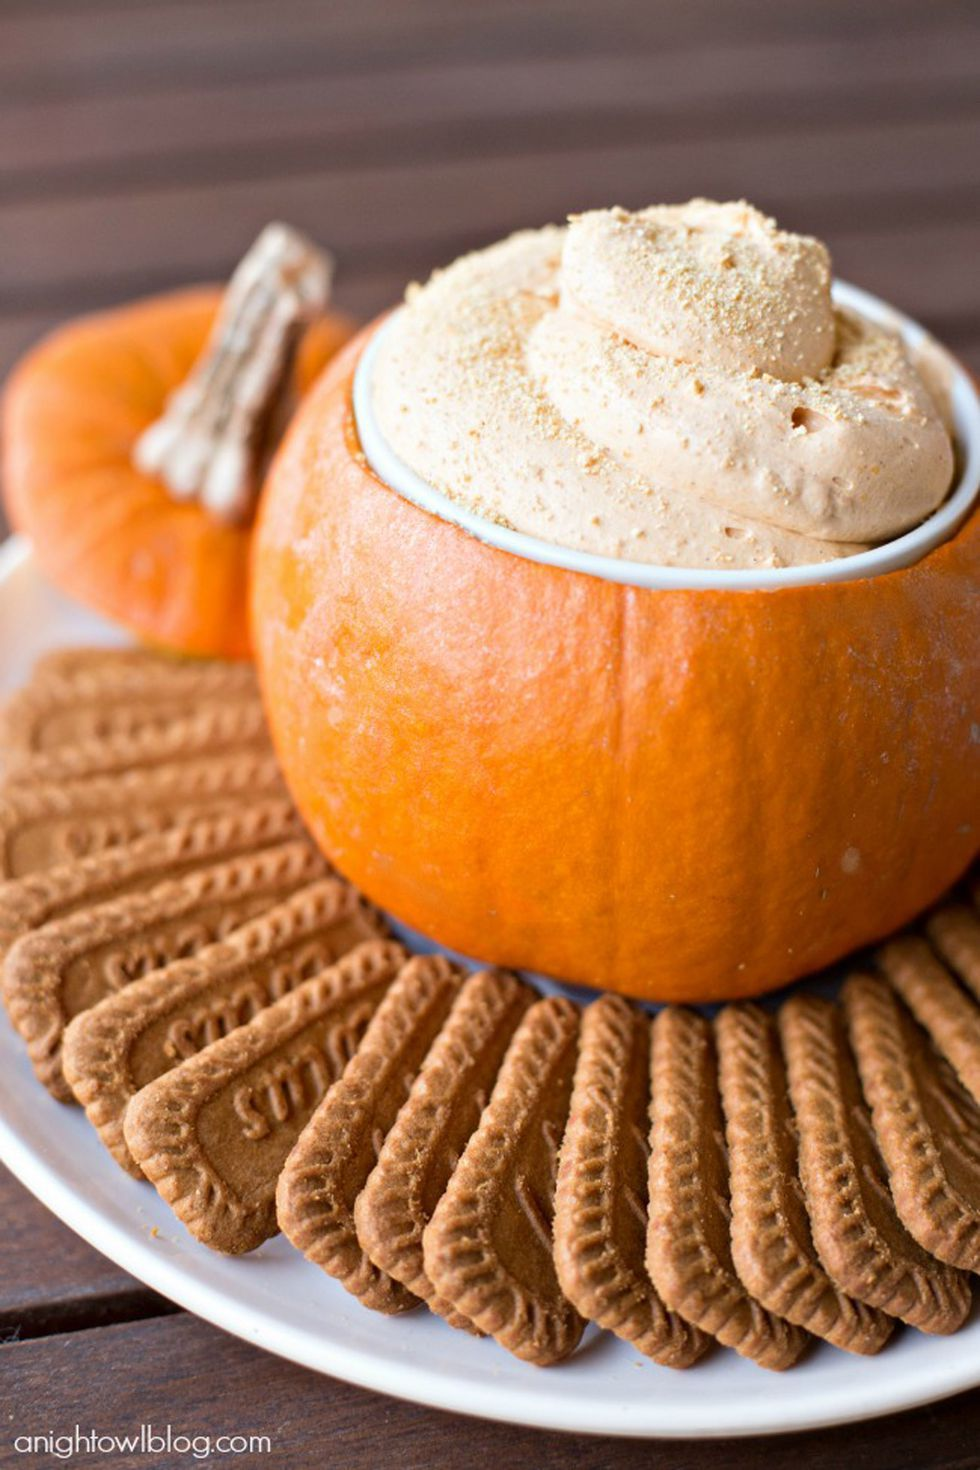 Spooky Snacks That Will Up Your Party's Creep Factor